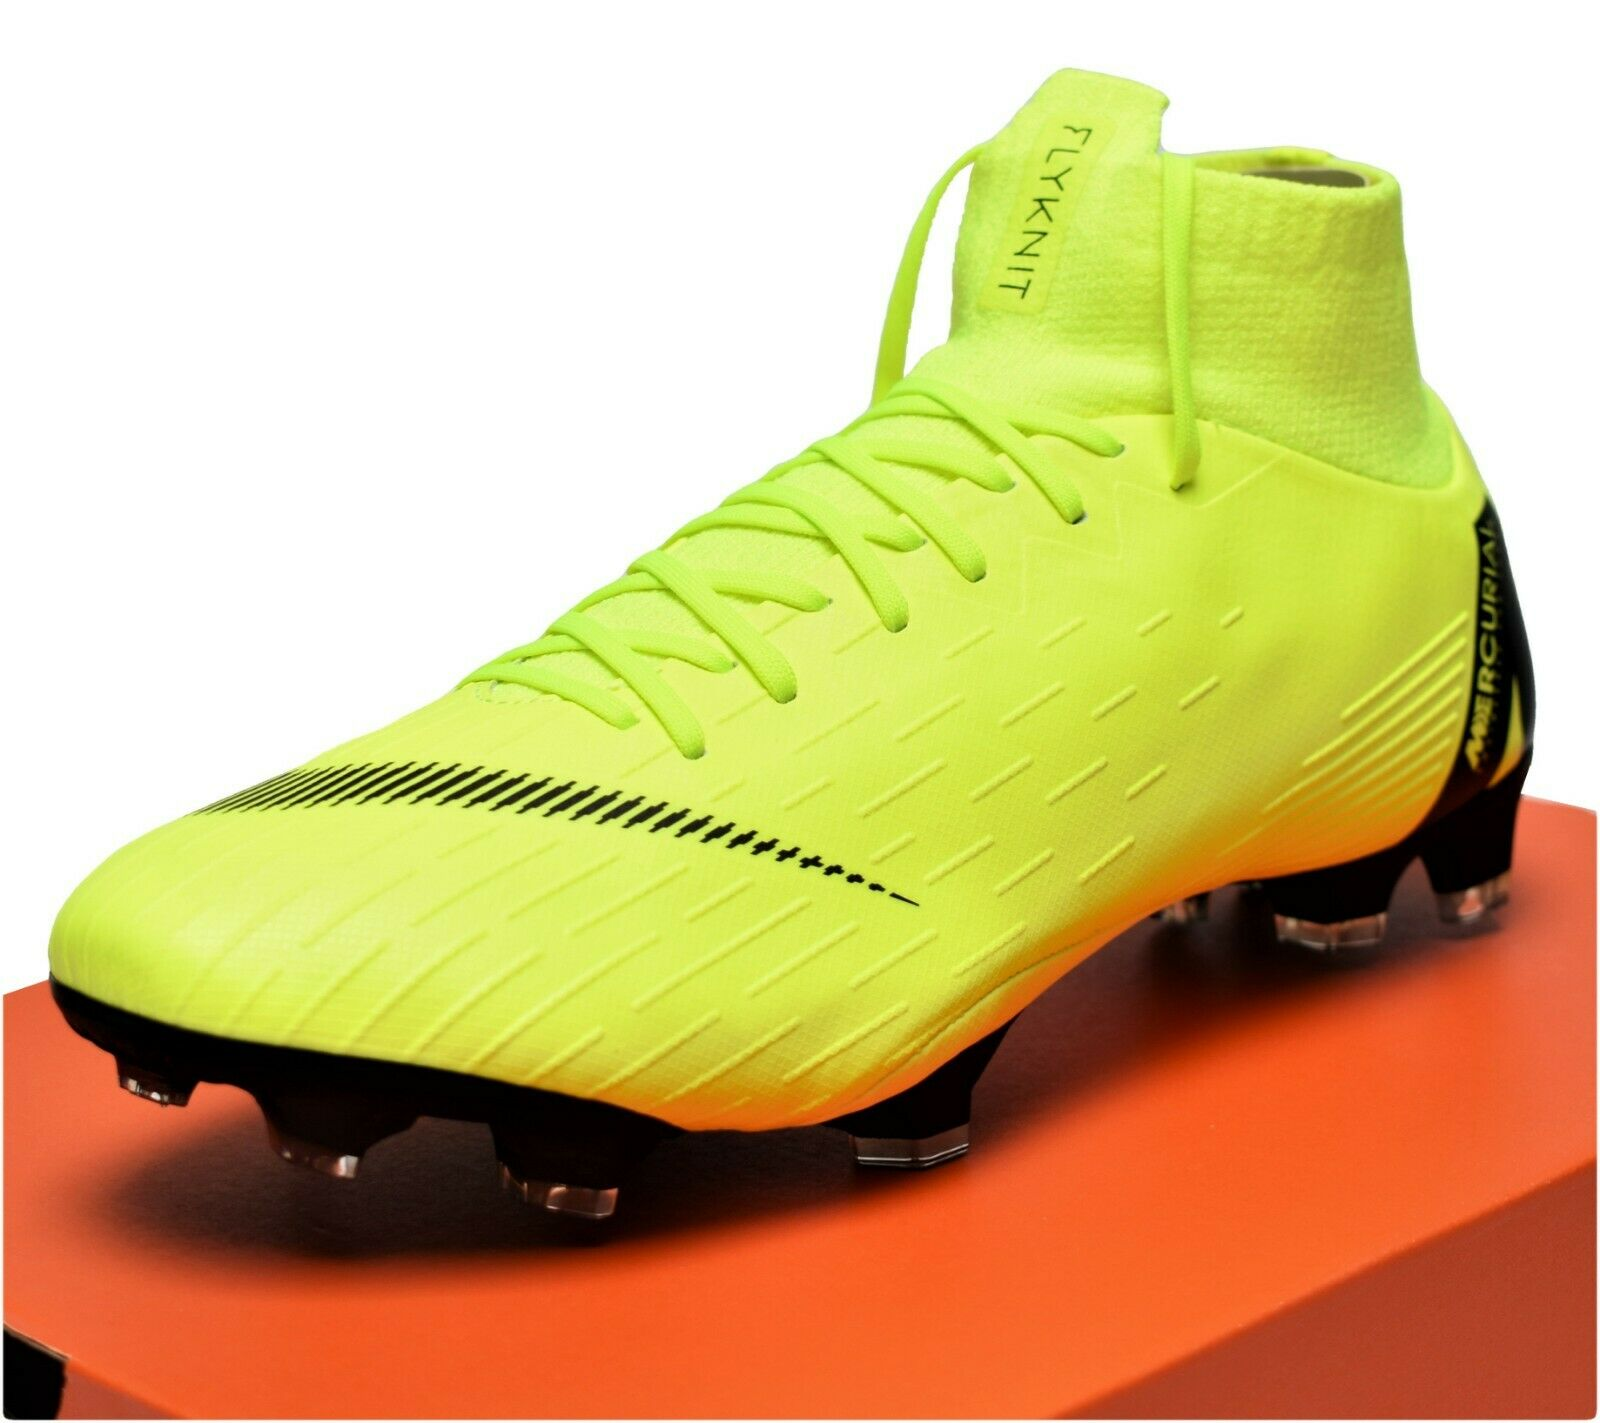 NIKE MERCURIAL SUPERFLY 6 PRO FG - New Men's Women's Soccer Cleats Volt Black